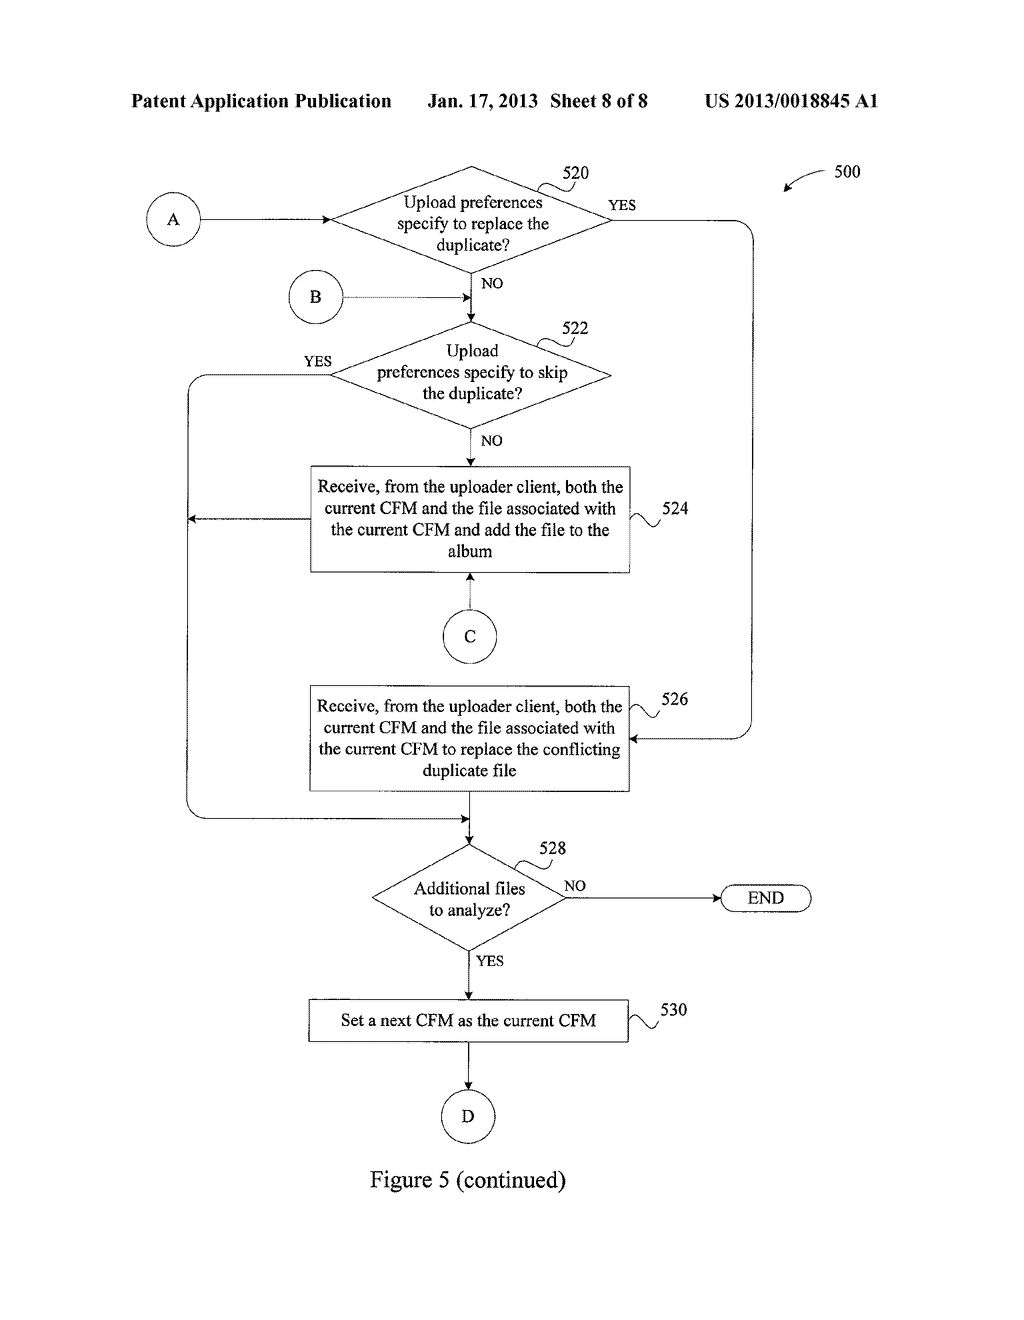 SYSTEM AND METHOD FOR MANAGING DUPLICATE FILE UPLOADSAANM Macaskill; DonAACI Los AltosAAST CAAACO USAAGP Macaskill; Don Los Altos CA USAANM Nichols; SamuelAACI Mountain ViewAAST CAAACO USAAGP Nichols; Samuel Mountain View CA US - diagram, schematic, and image 09